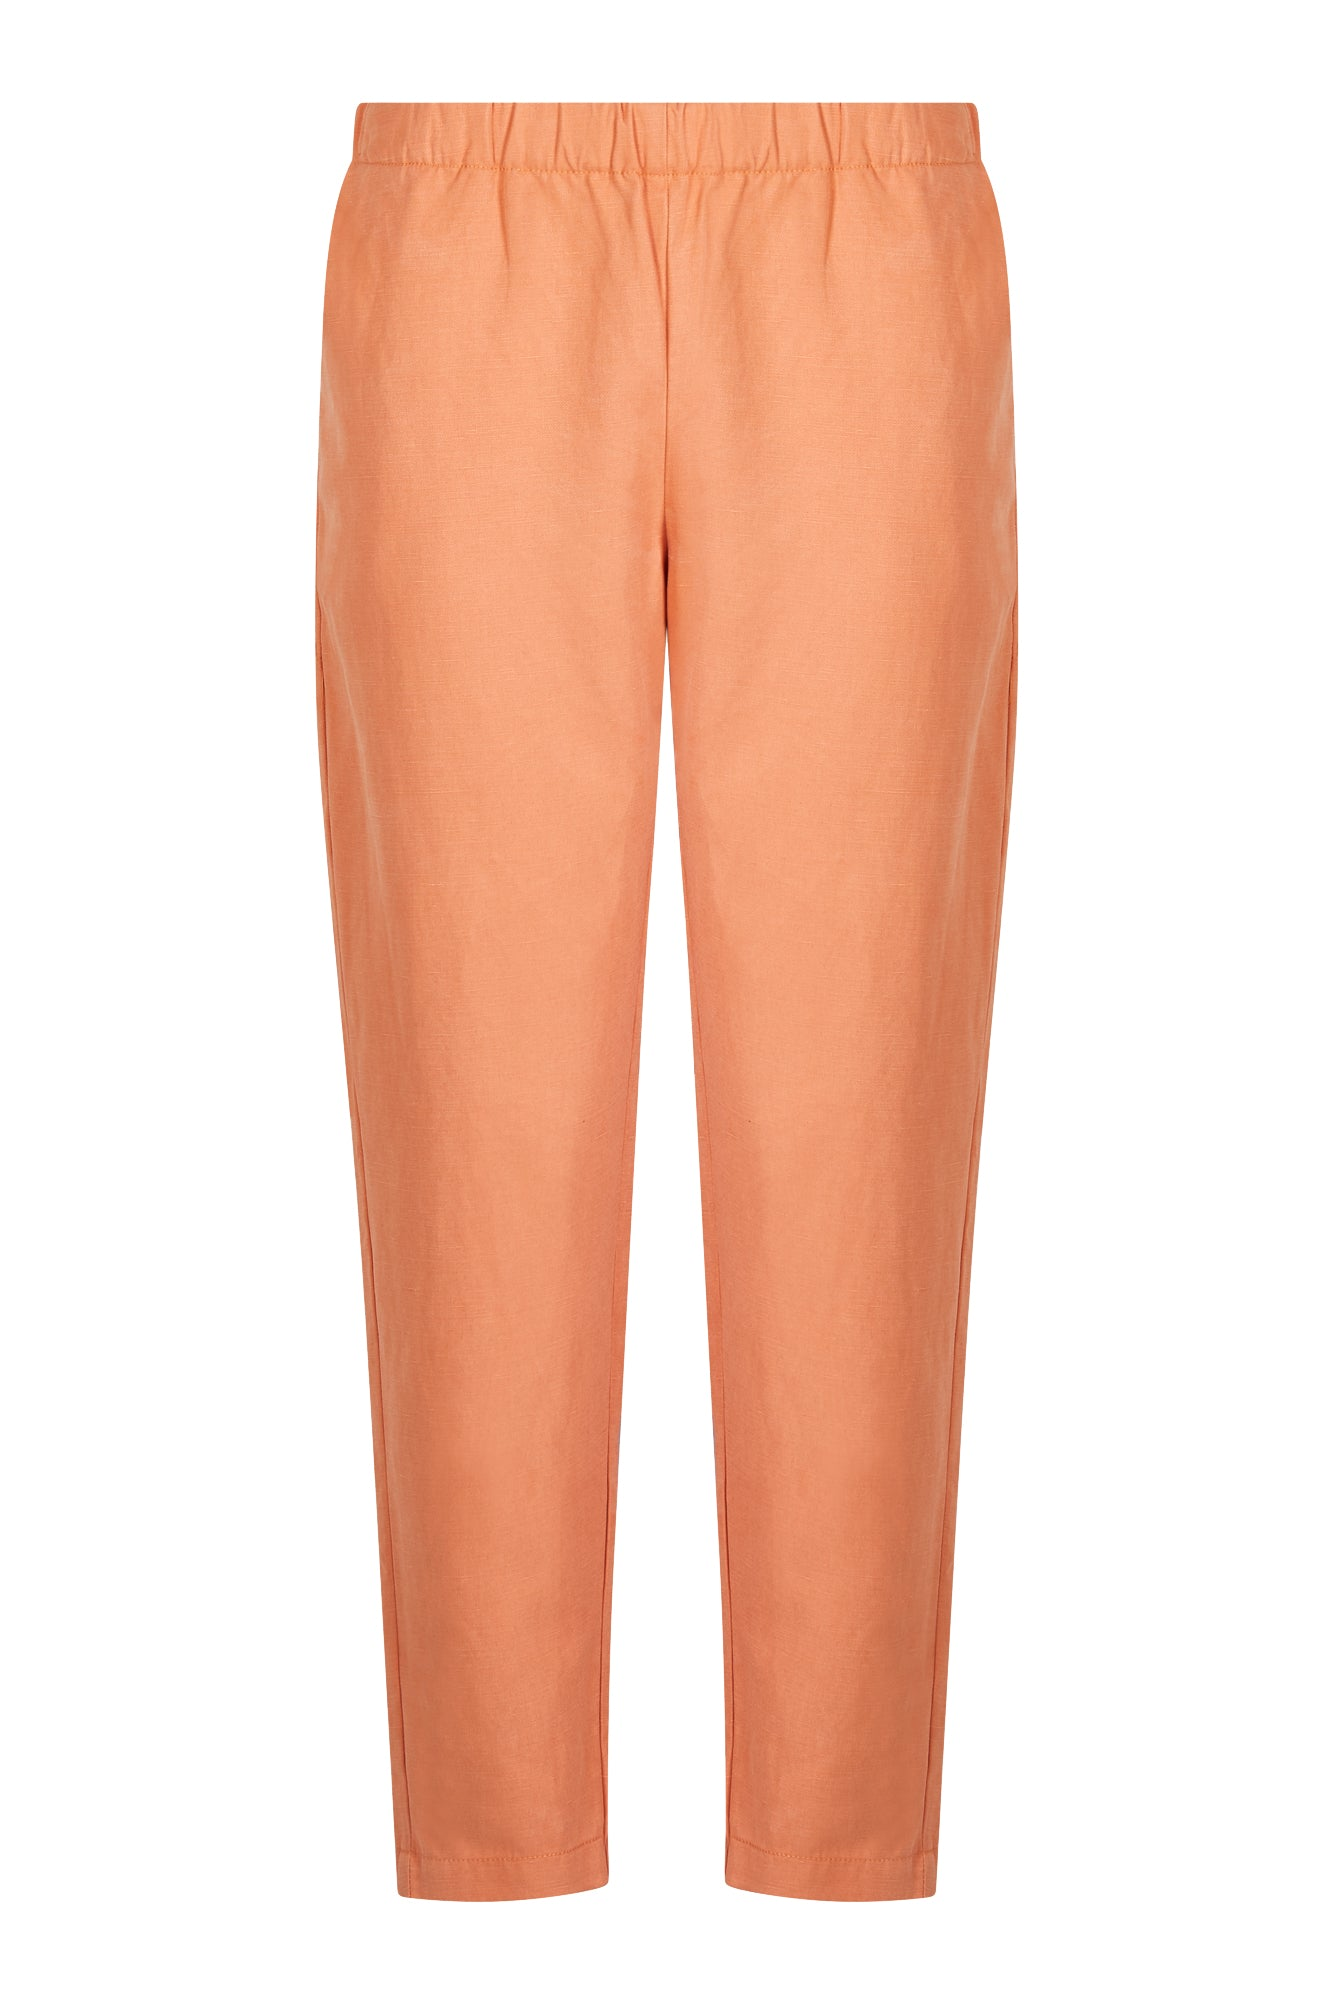 RAMA Tencel Trousers Ginger